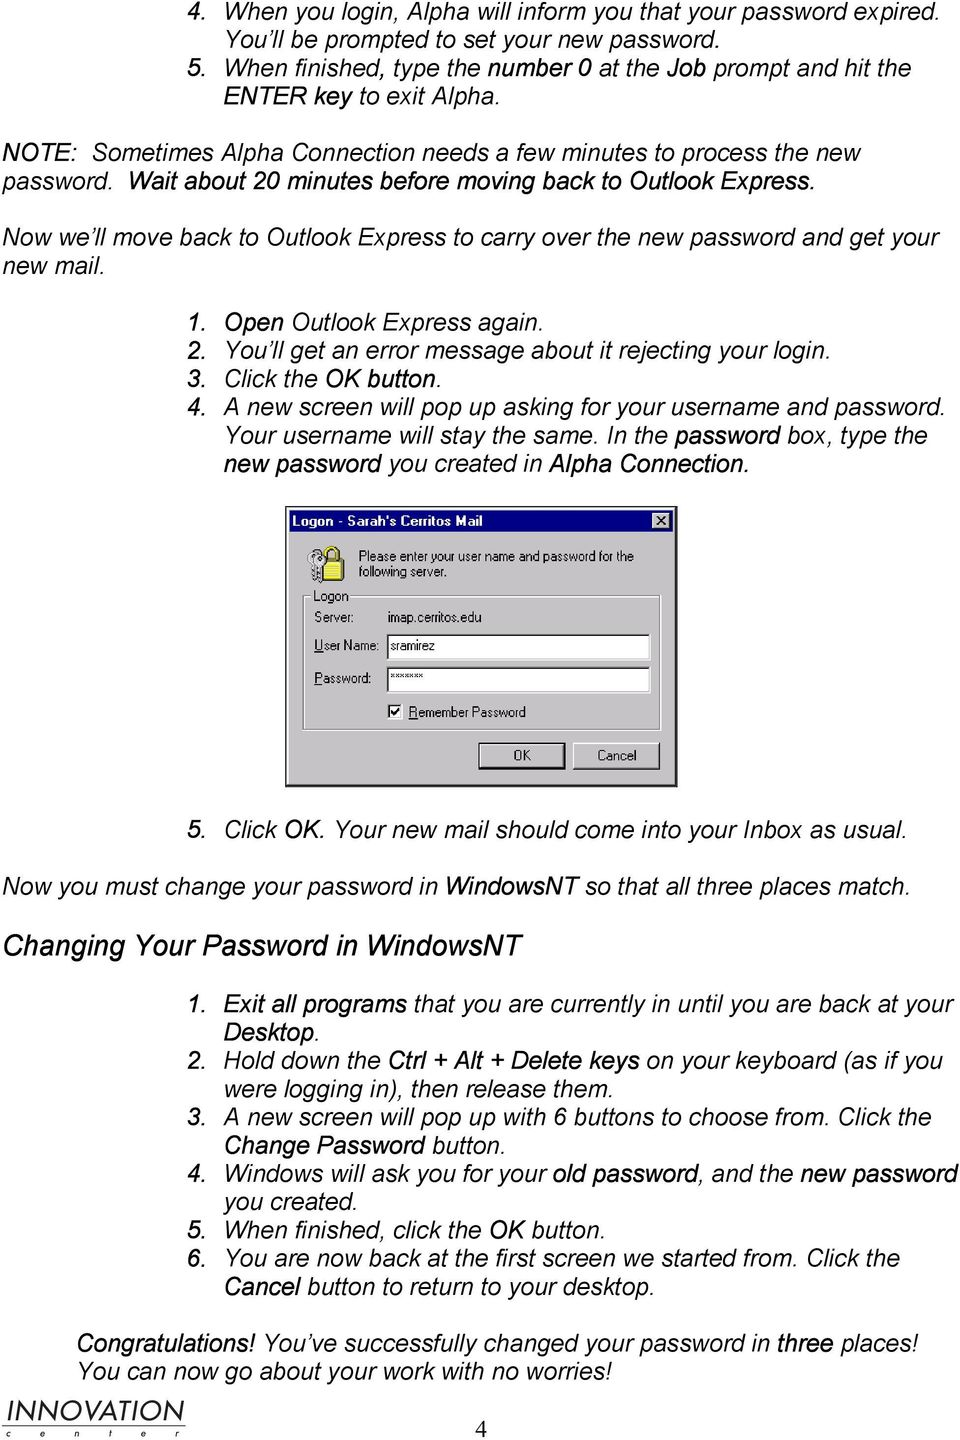 Wait about 20 minutes before moving back to Outlook Express. Now we ll move back to Outlook Express to carry over the new password and get your new mail. 1. Open Outlook Express again. 2. You ll get an error message about it rejecting your login.